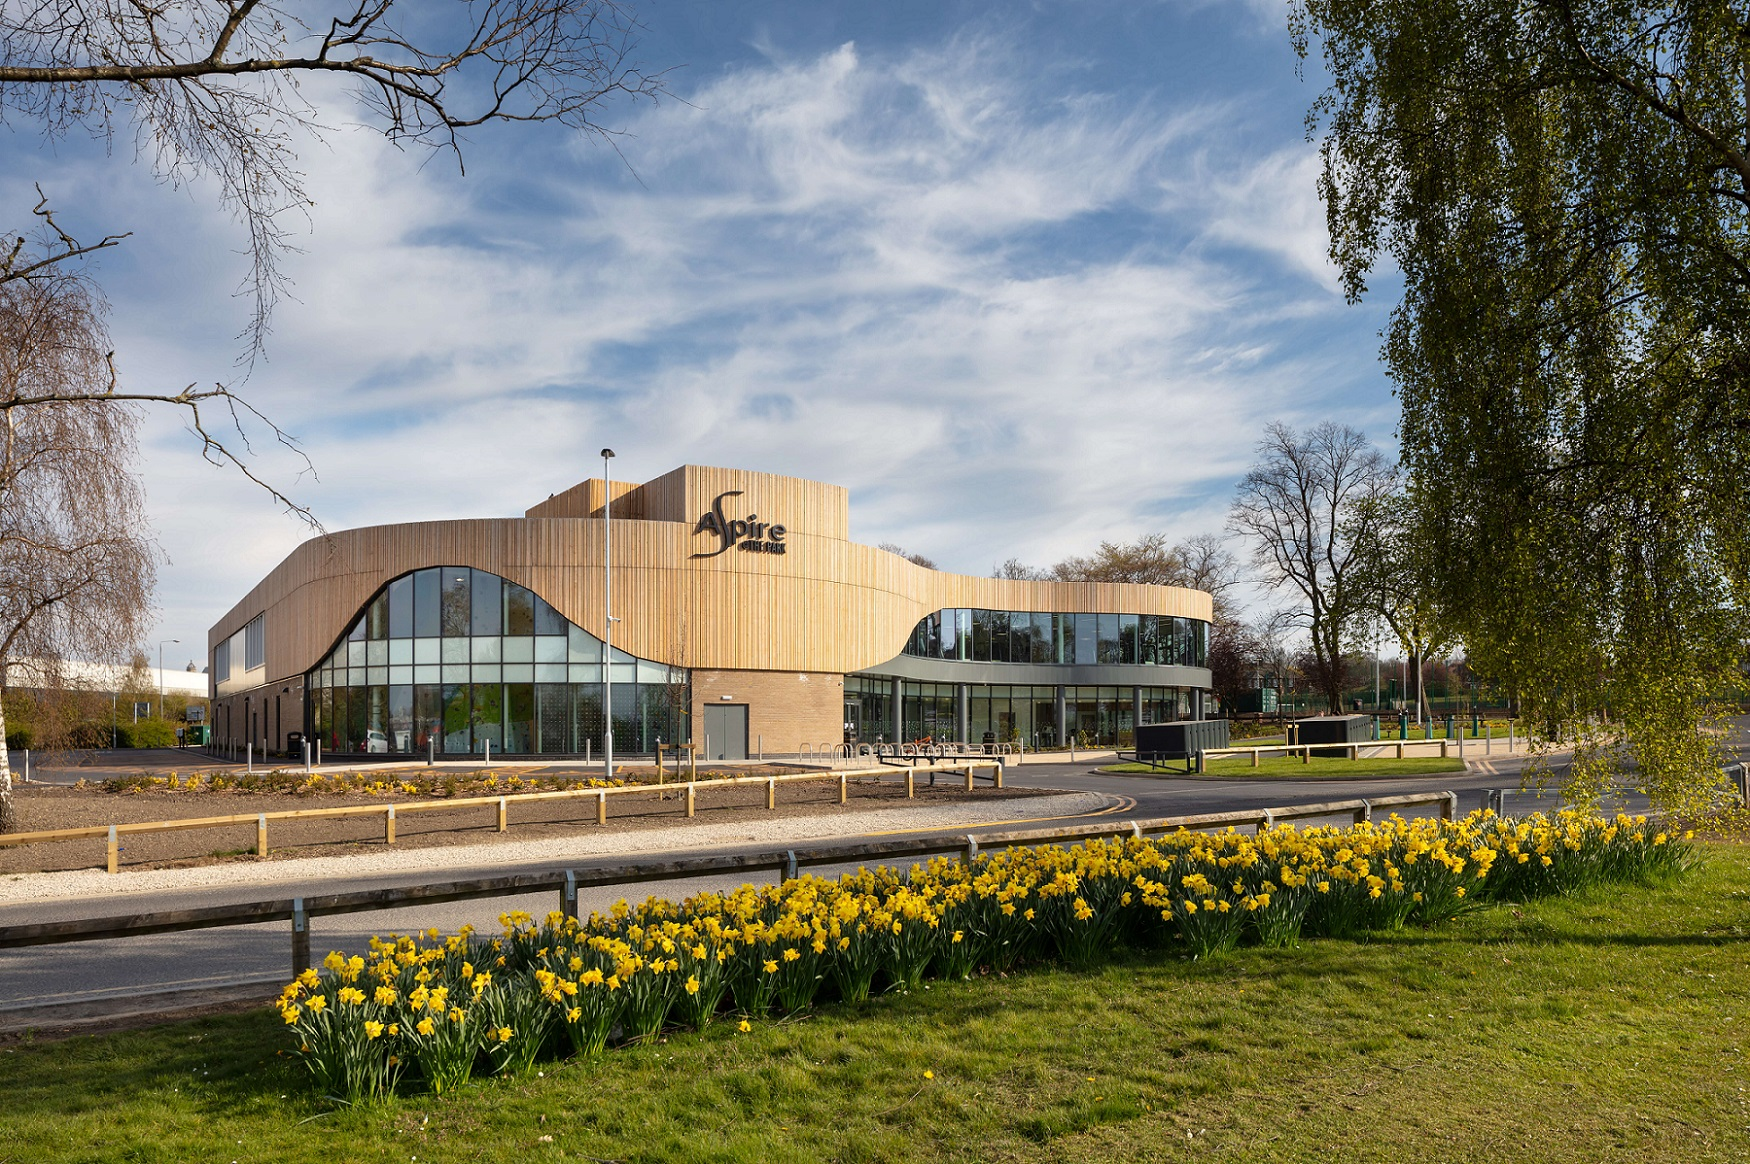 WEST YORKSHIRE GETS MOVING WITH COMPLETED £21M LEISURE CENTRE